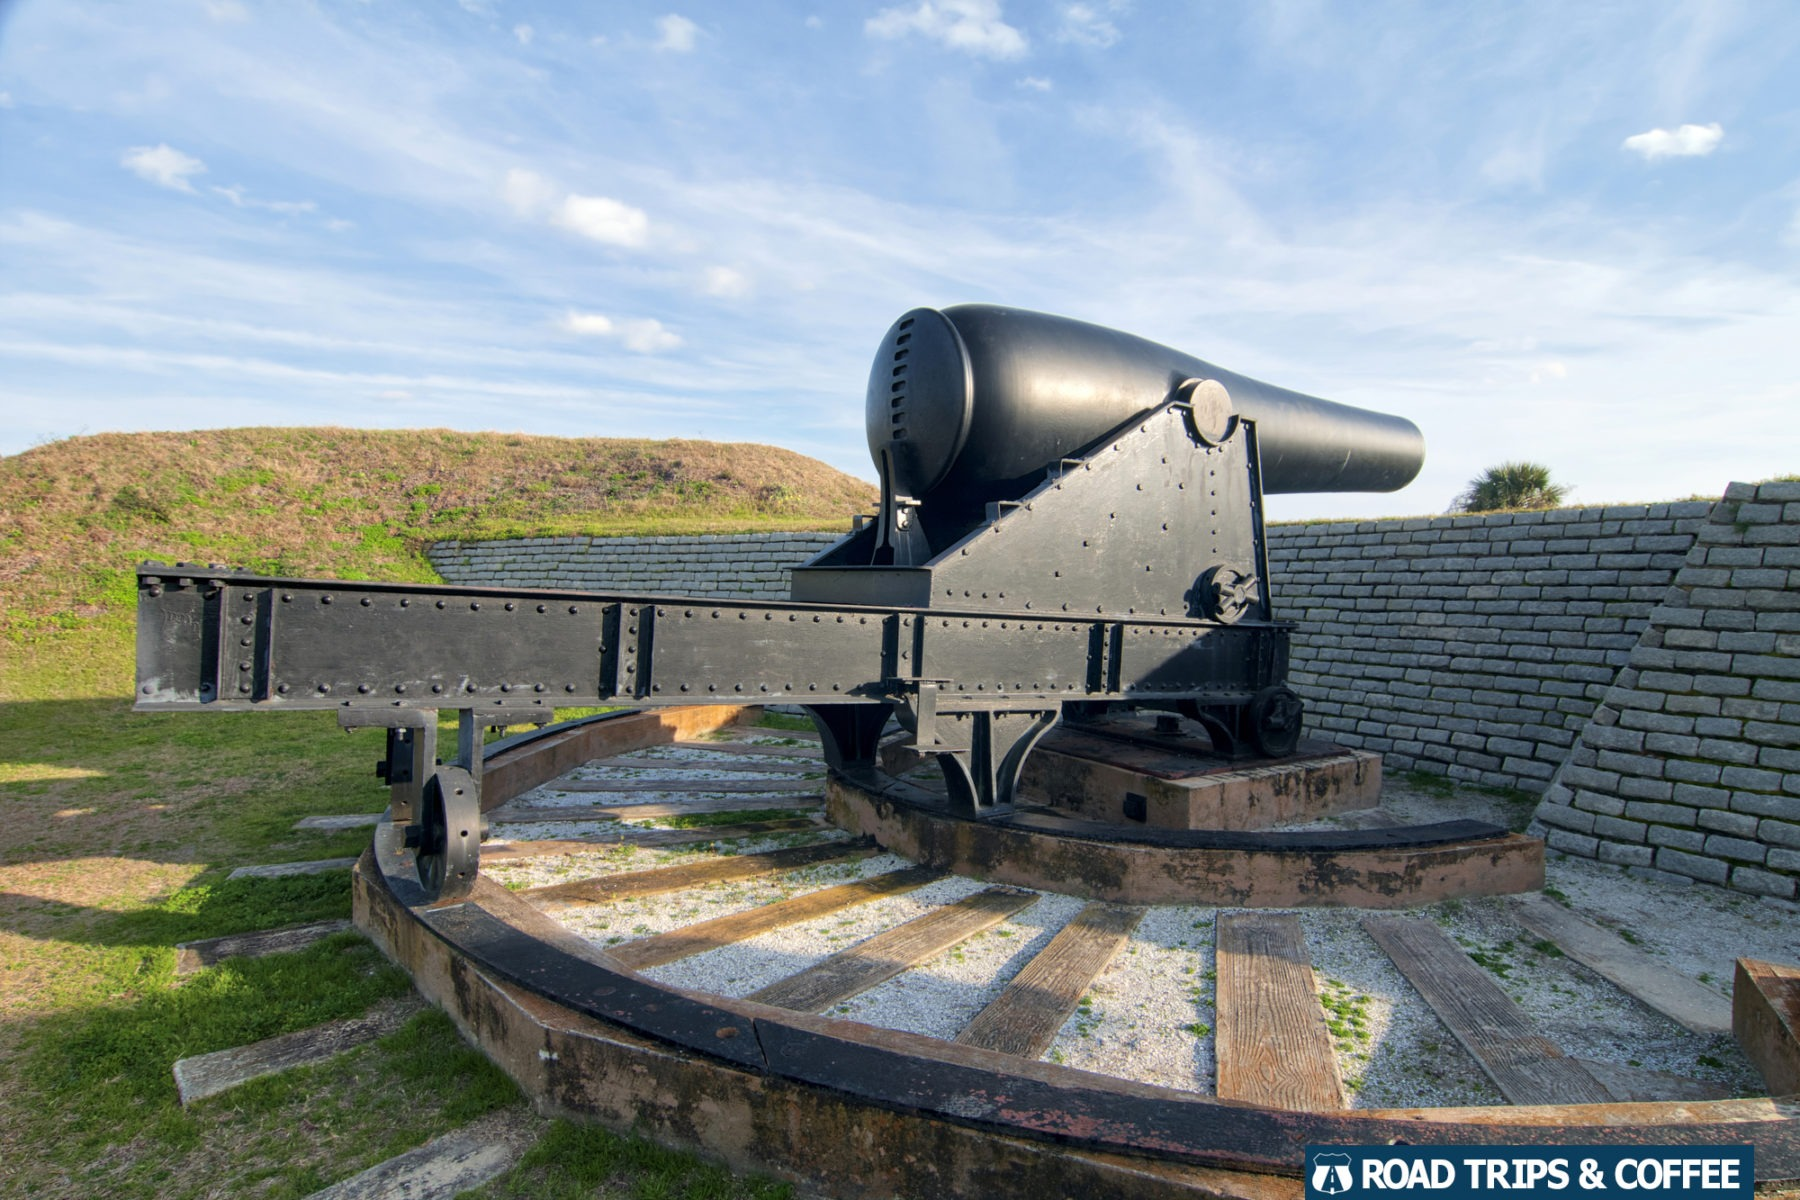 A giant Rodman Gun on display at Fort Moultrie at Fort Sumter & Fort Moultrie National Historical Park in Sullivan's Island, South Carolina